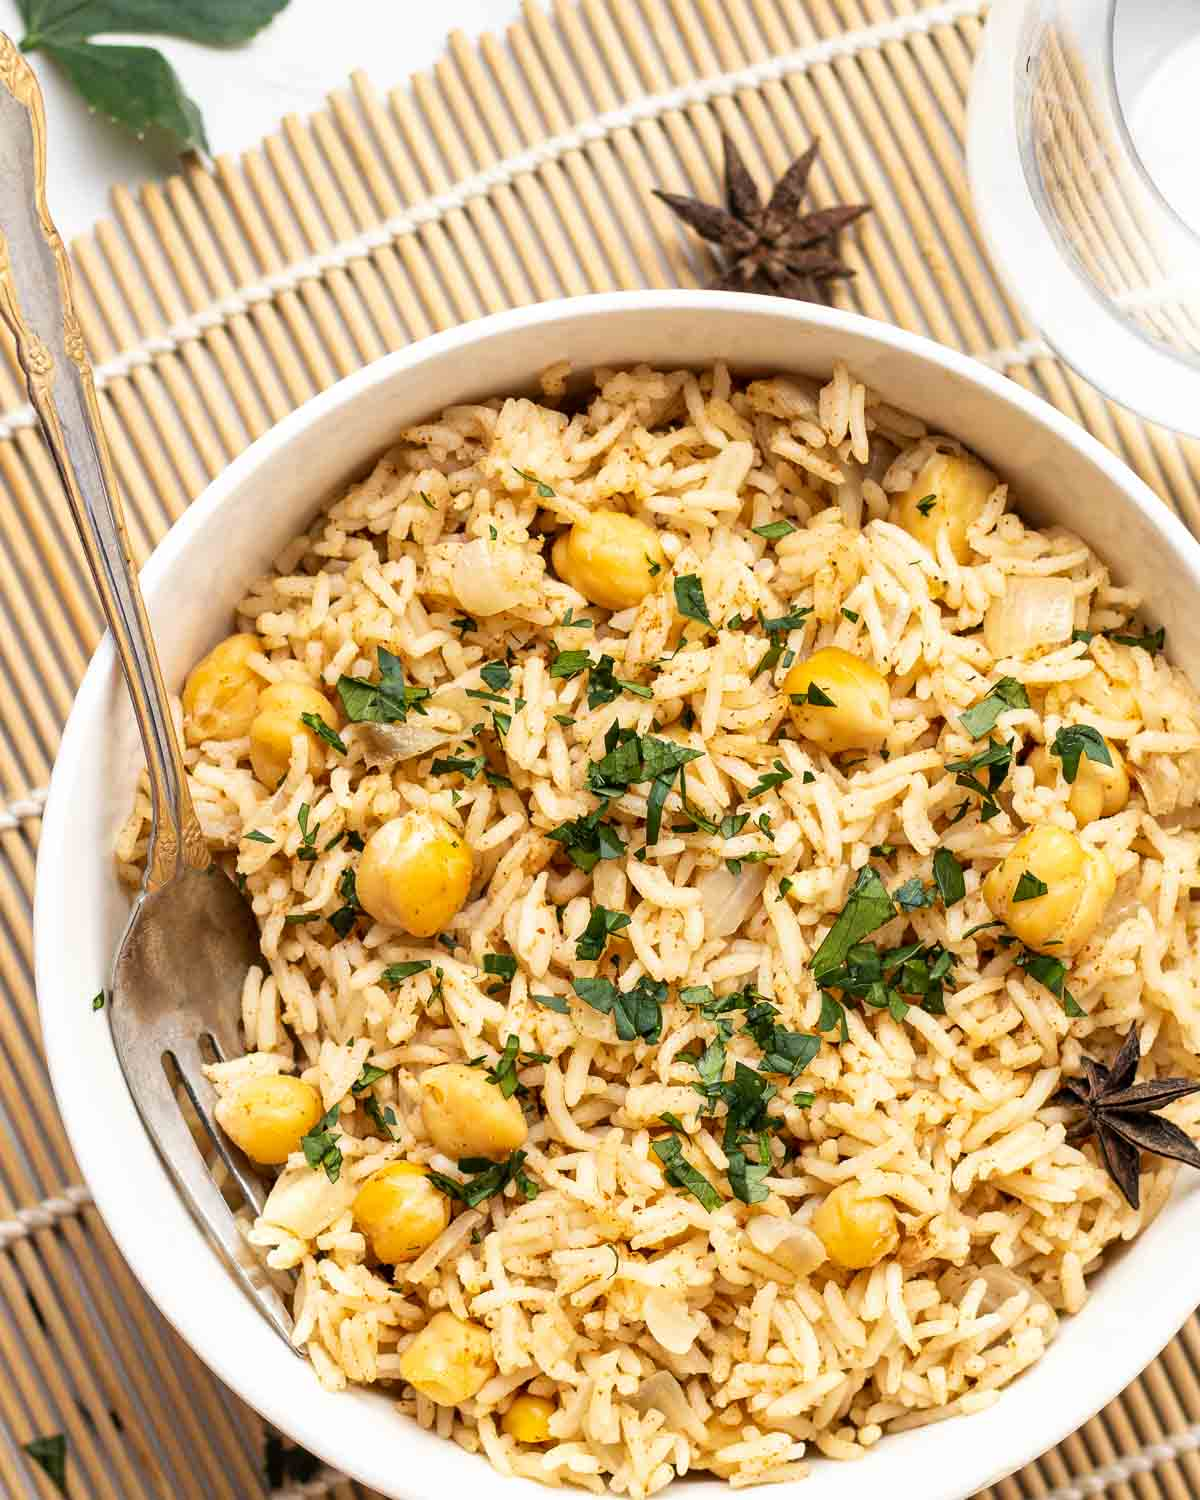 Chana pulao in a white bowl with a fork topped with chopped cilantro.